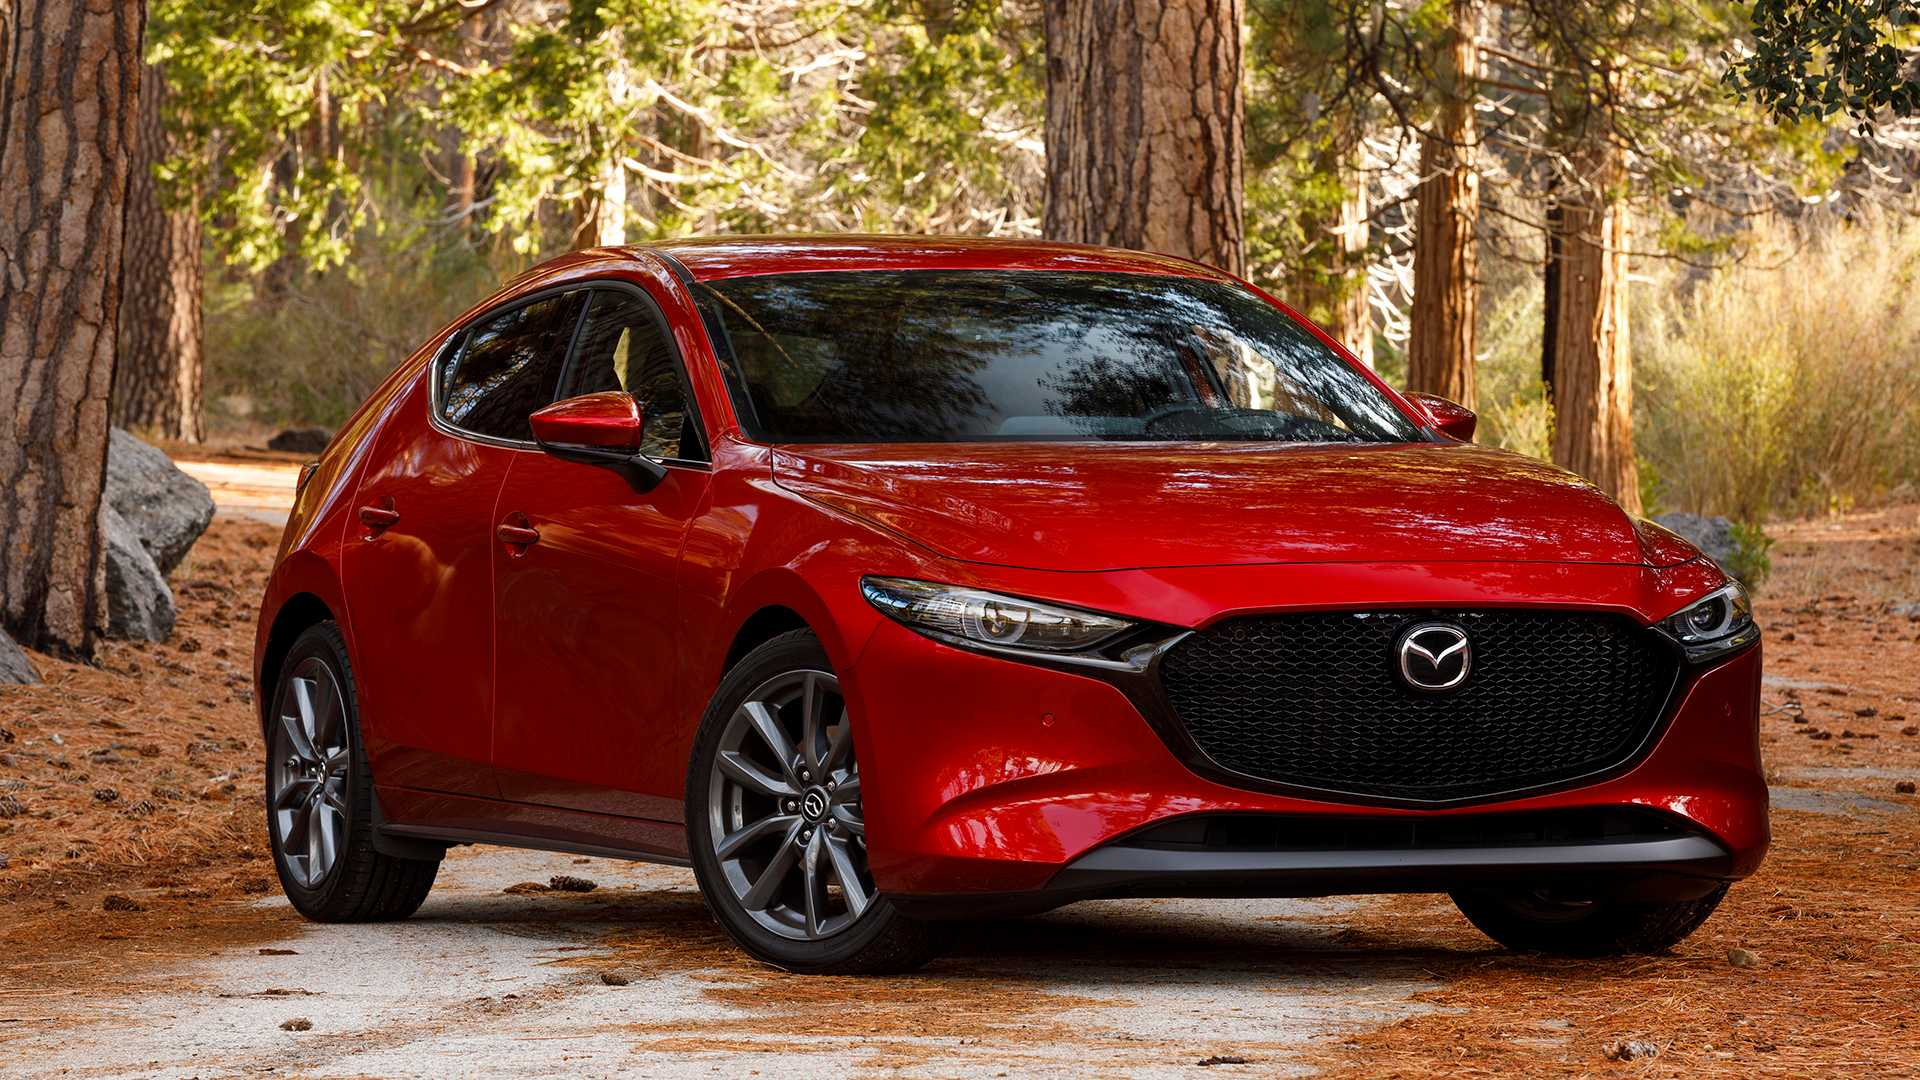 83 New 2020 Mazda 3 Turbo Price And Review